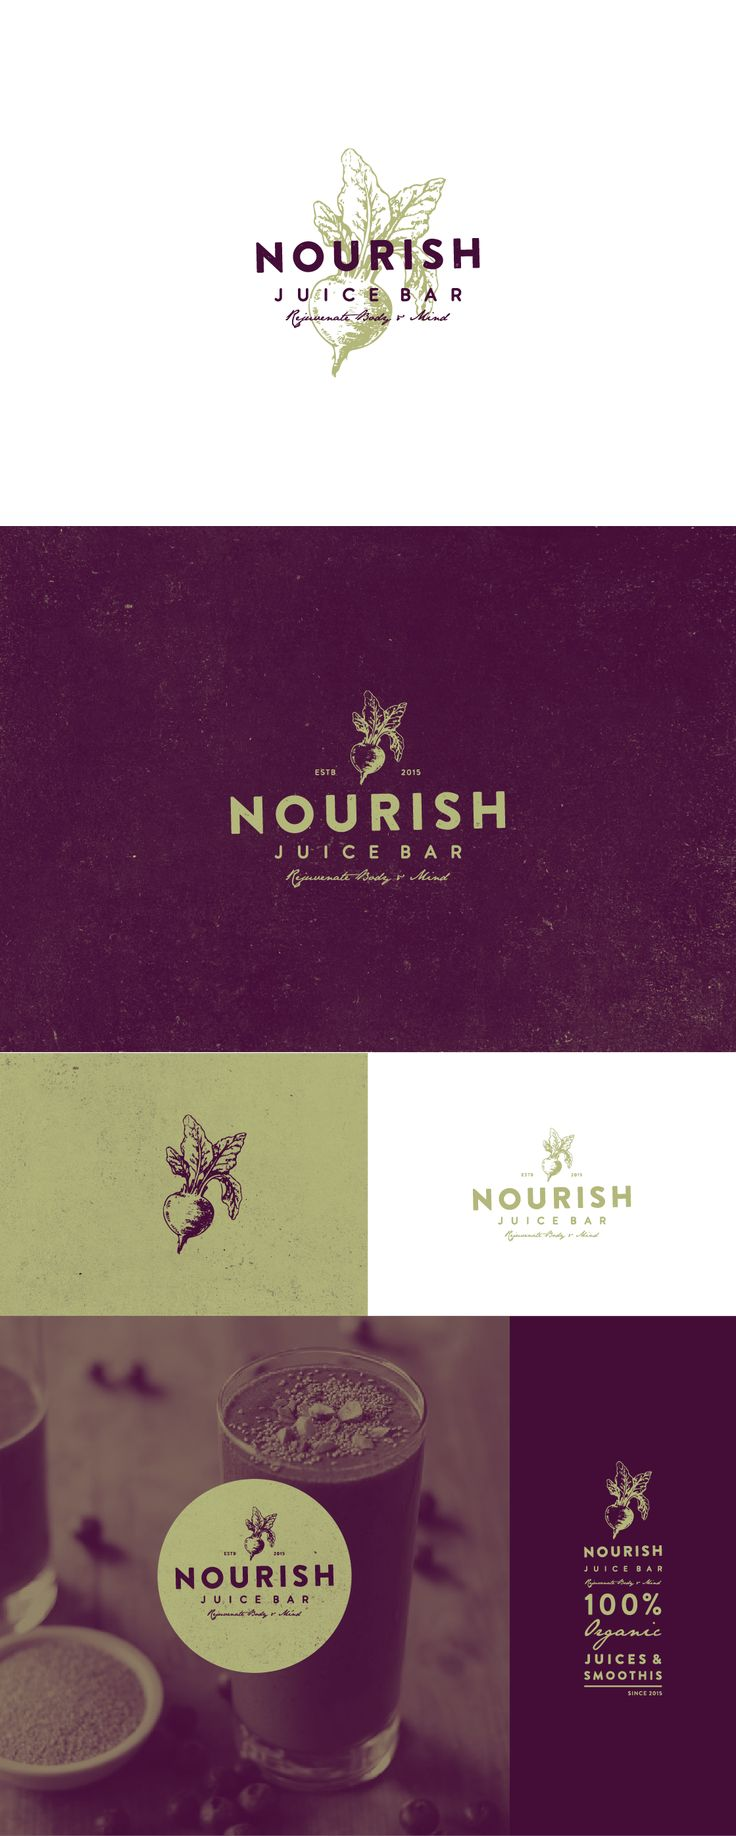 logo design for NOURISH juice bar